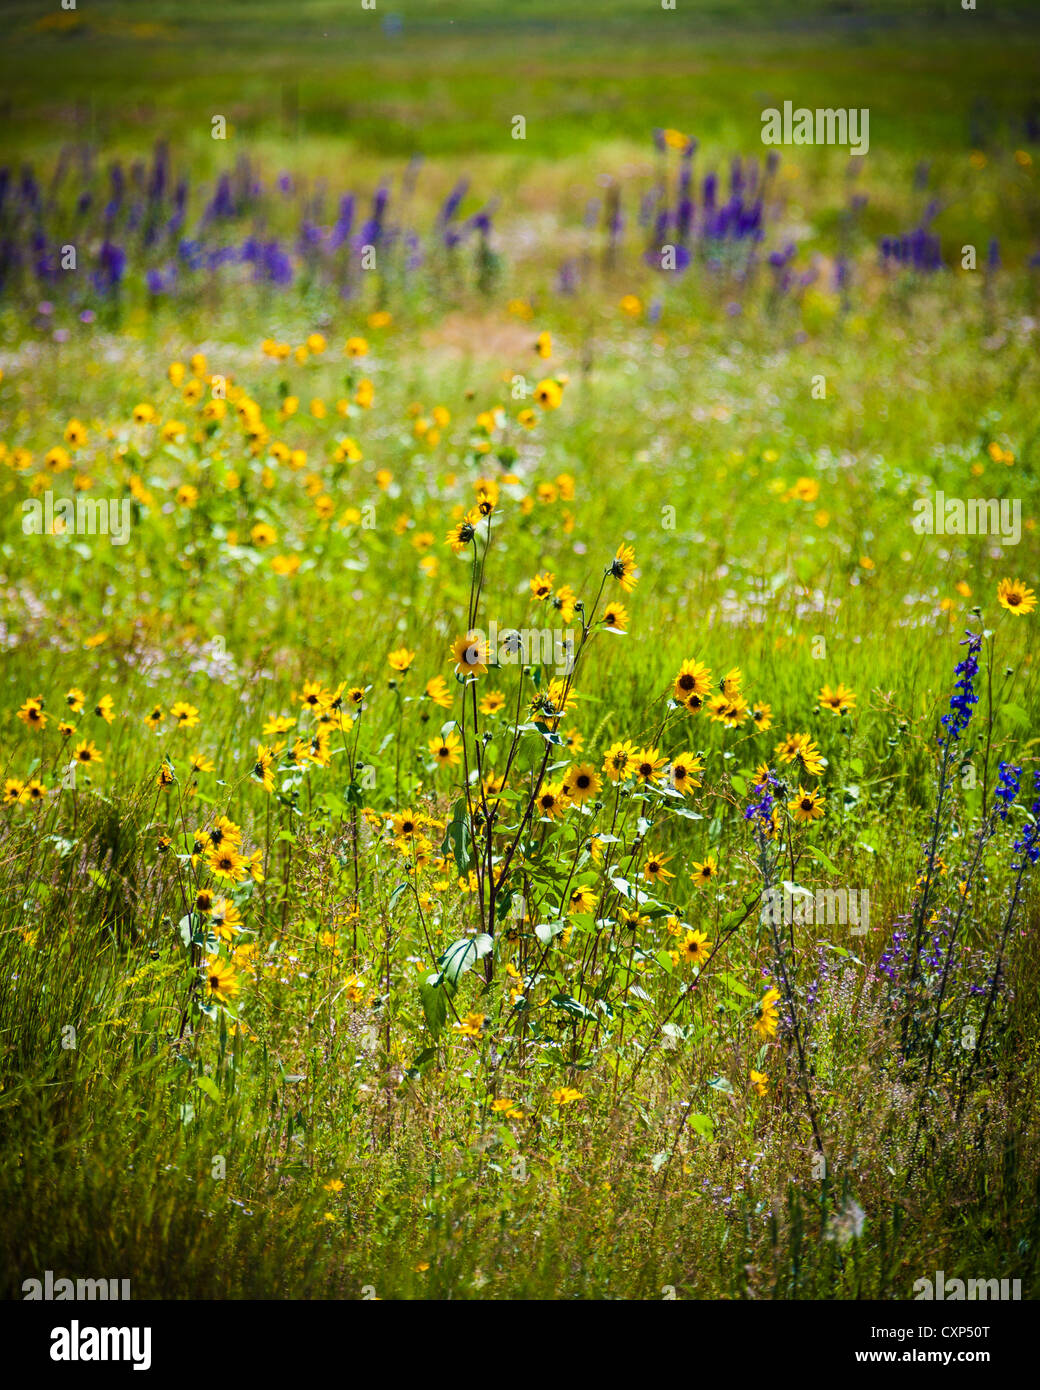 Wild Yellow And Purple Flowers Growing In A Meadow In An Arizona